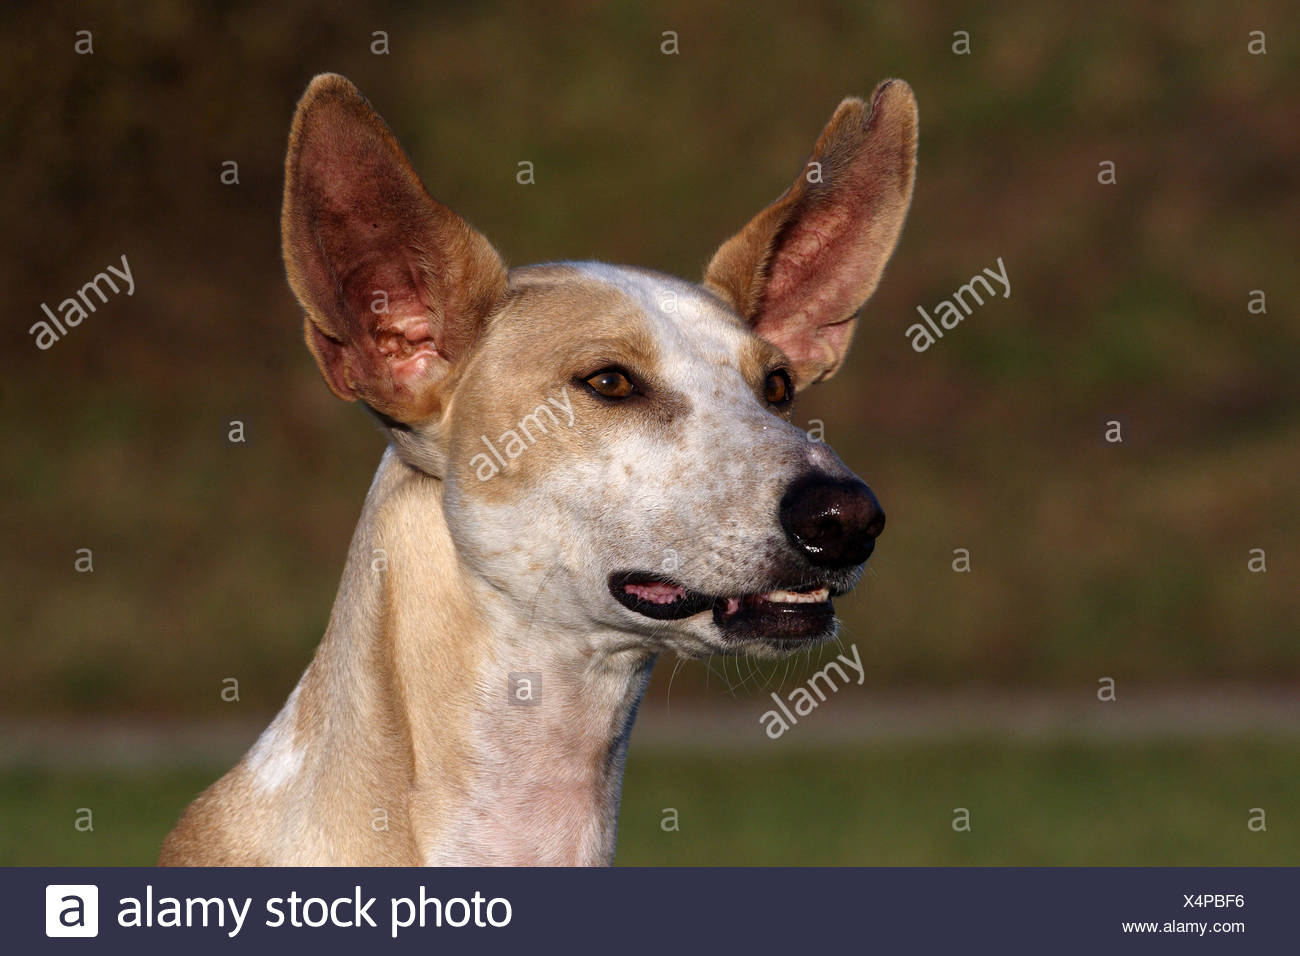 Podenco Canario Portrait Stock Photo